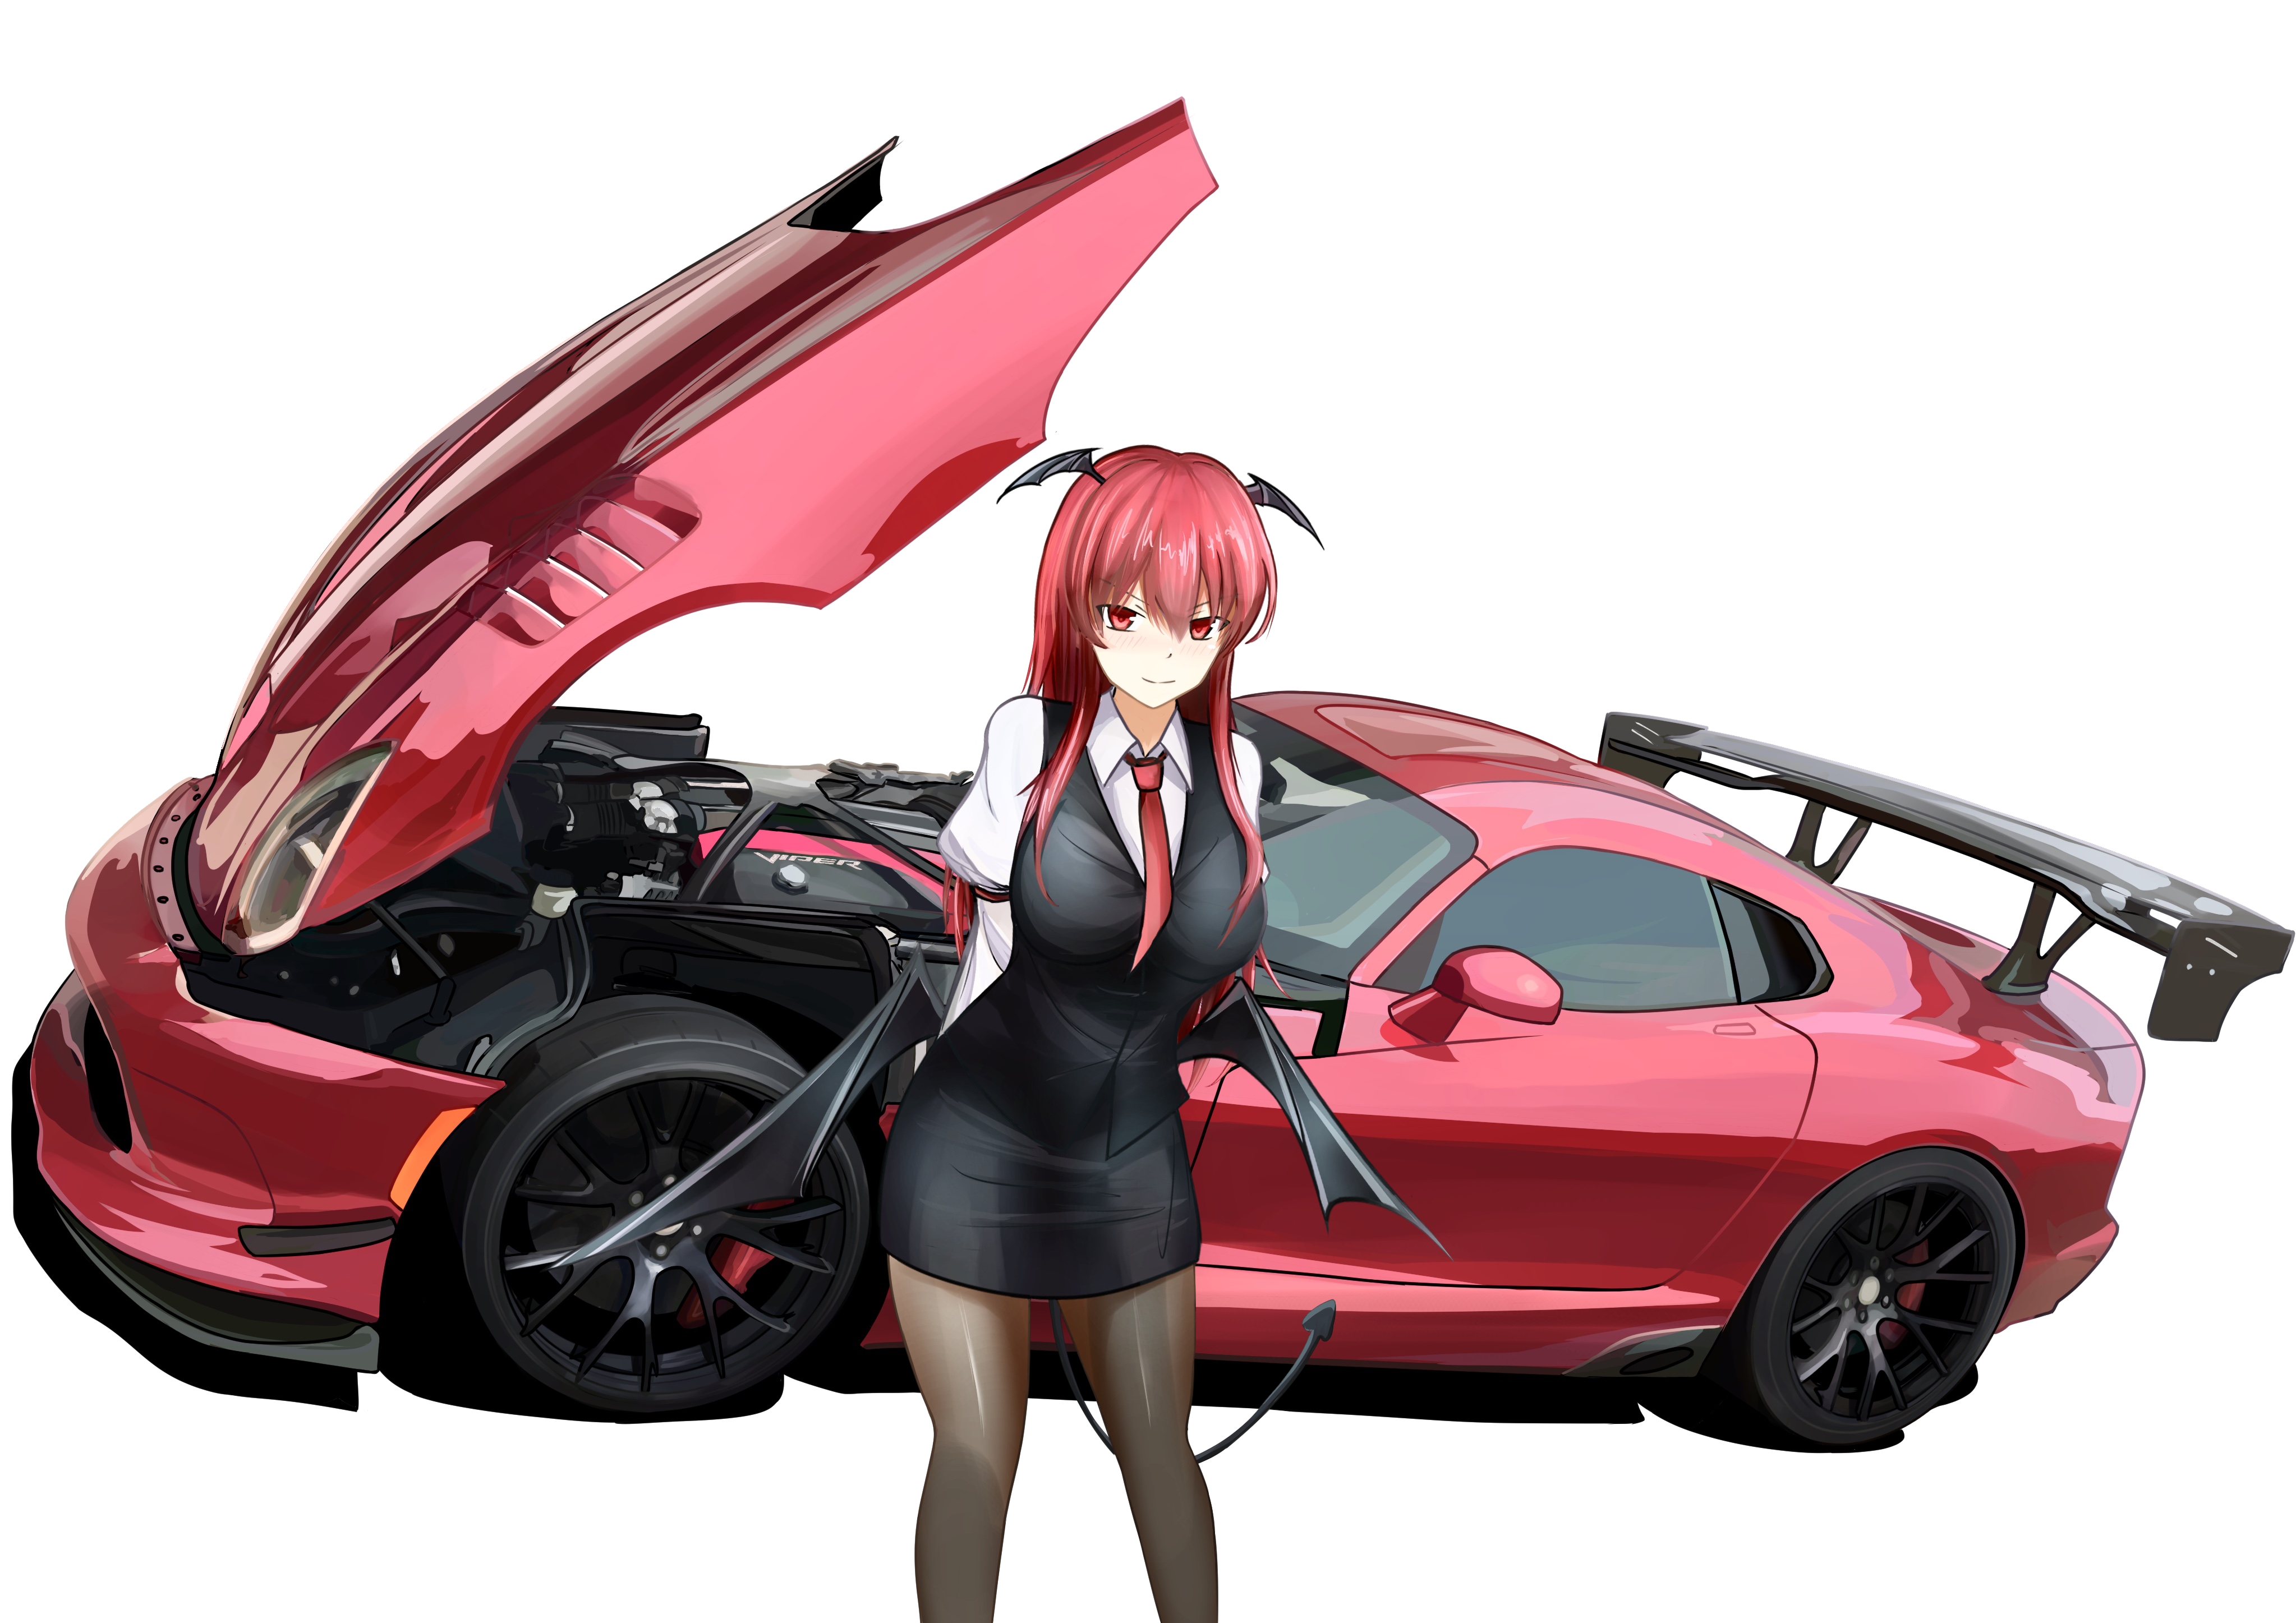 1girl 3books Absurdres Armband Arms Behind Back Bat Wings Black Legwear Breasts Car Commentary Request Cowboy Shot D Anime Motorcycle Art Cars Car Drawings